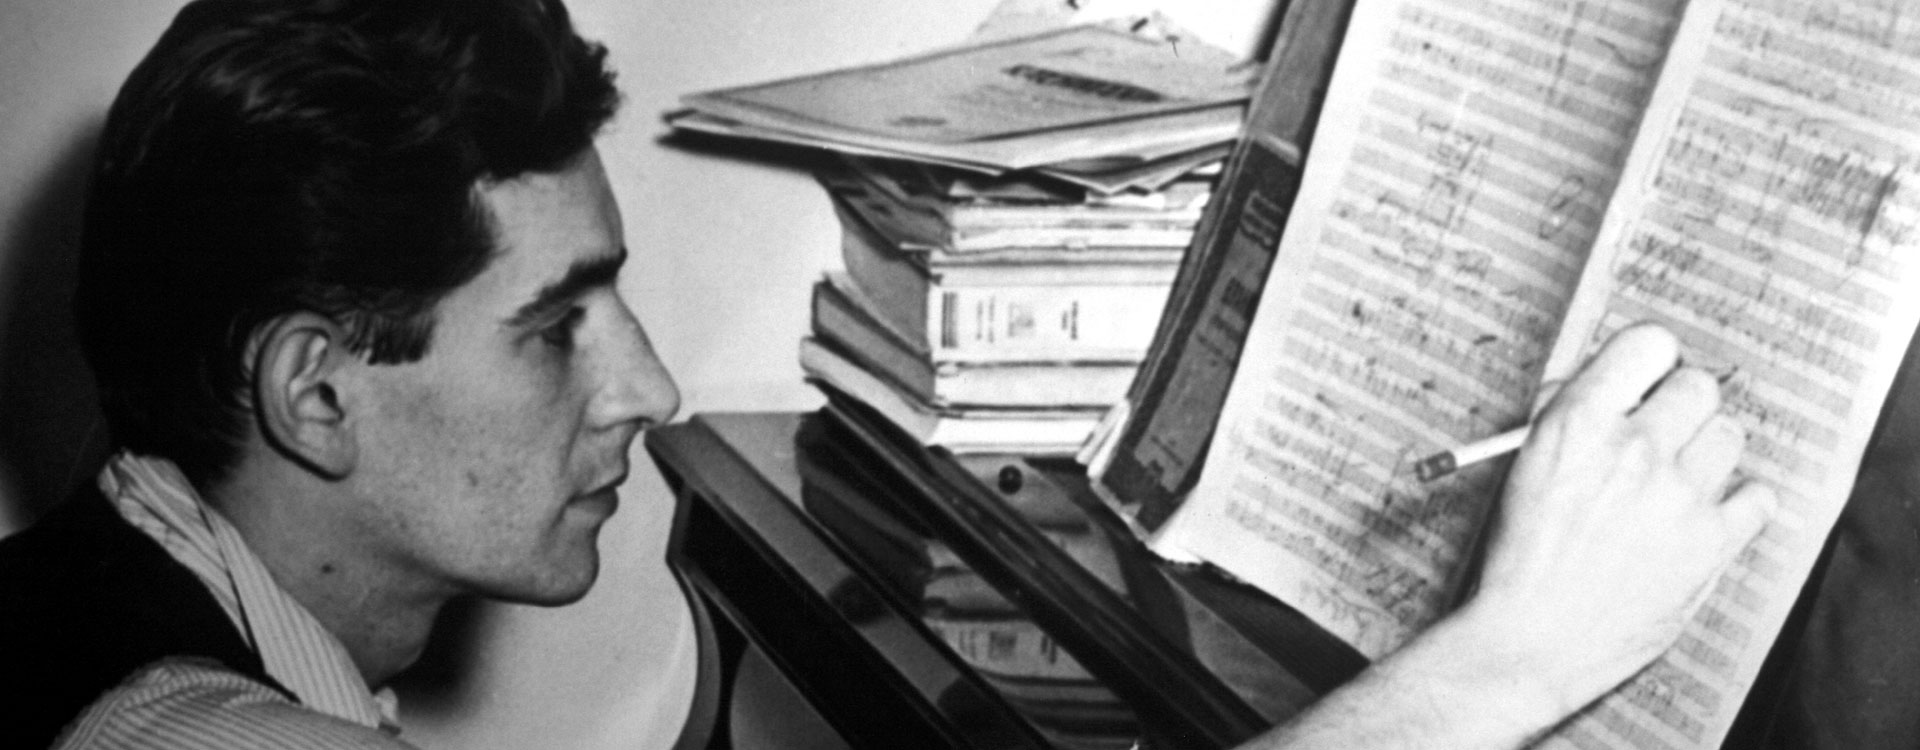 """biography of leonard bernstein Determined to make a career in music, despite his father's insistence that """"music  just keeps people awake at night,"""" bernstein eschewed the family beauty parlor."""